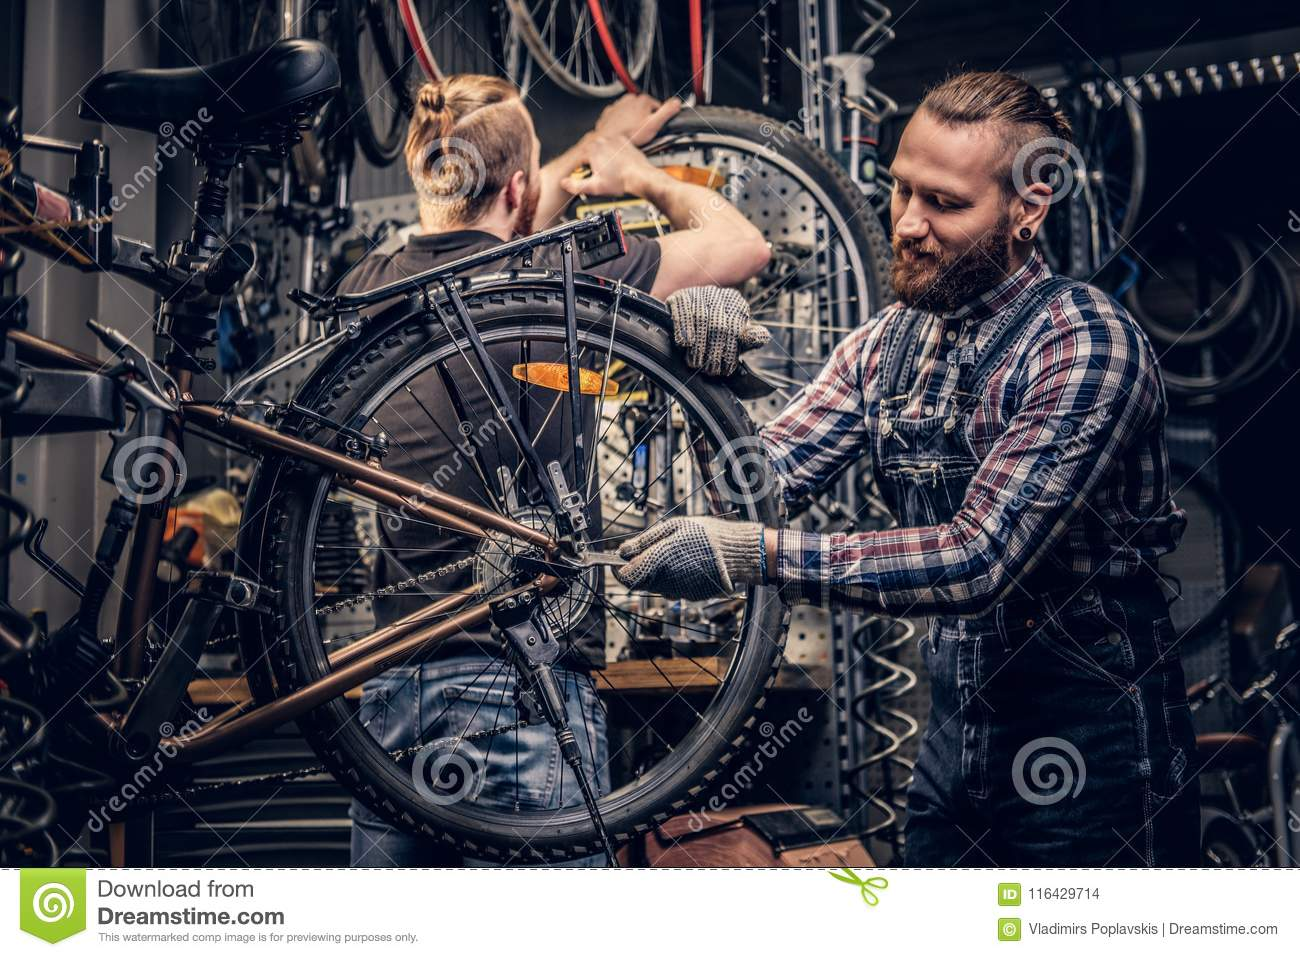 Mechanic doing bicycle wheel service manual in a workshop.